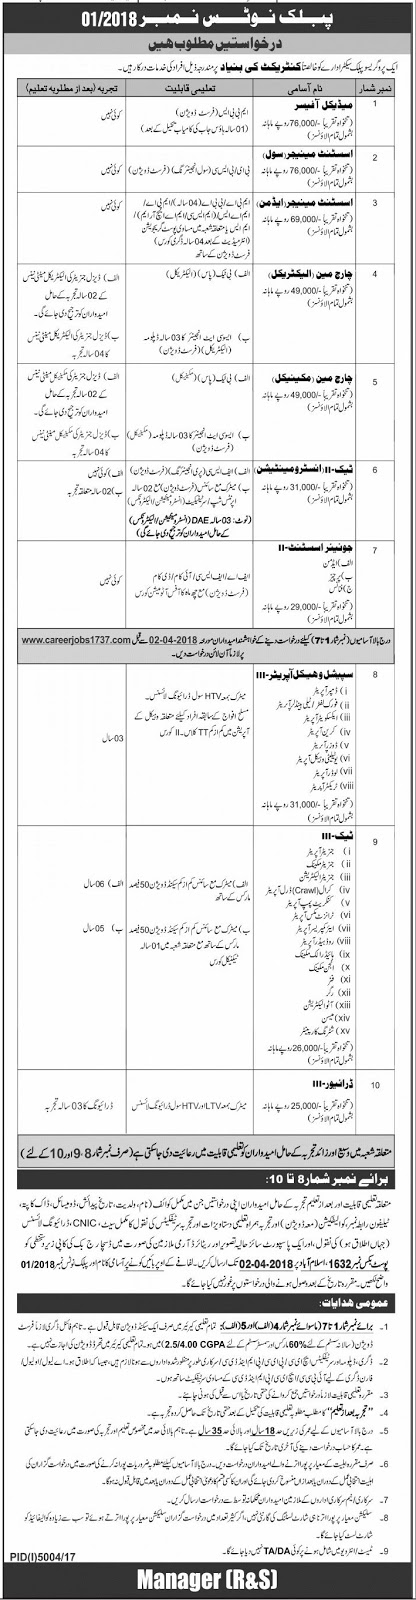 Jobs In Public Sector Organization Islamabad 2018 for Technical Operators and others